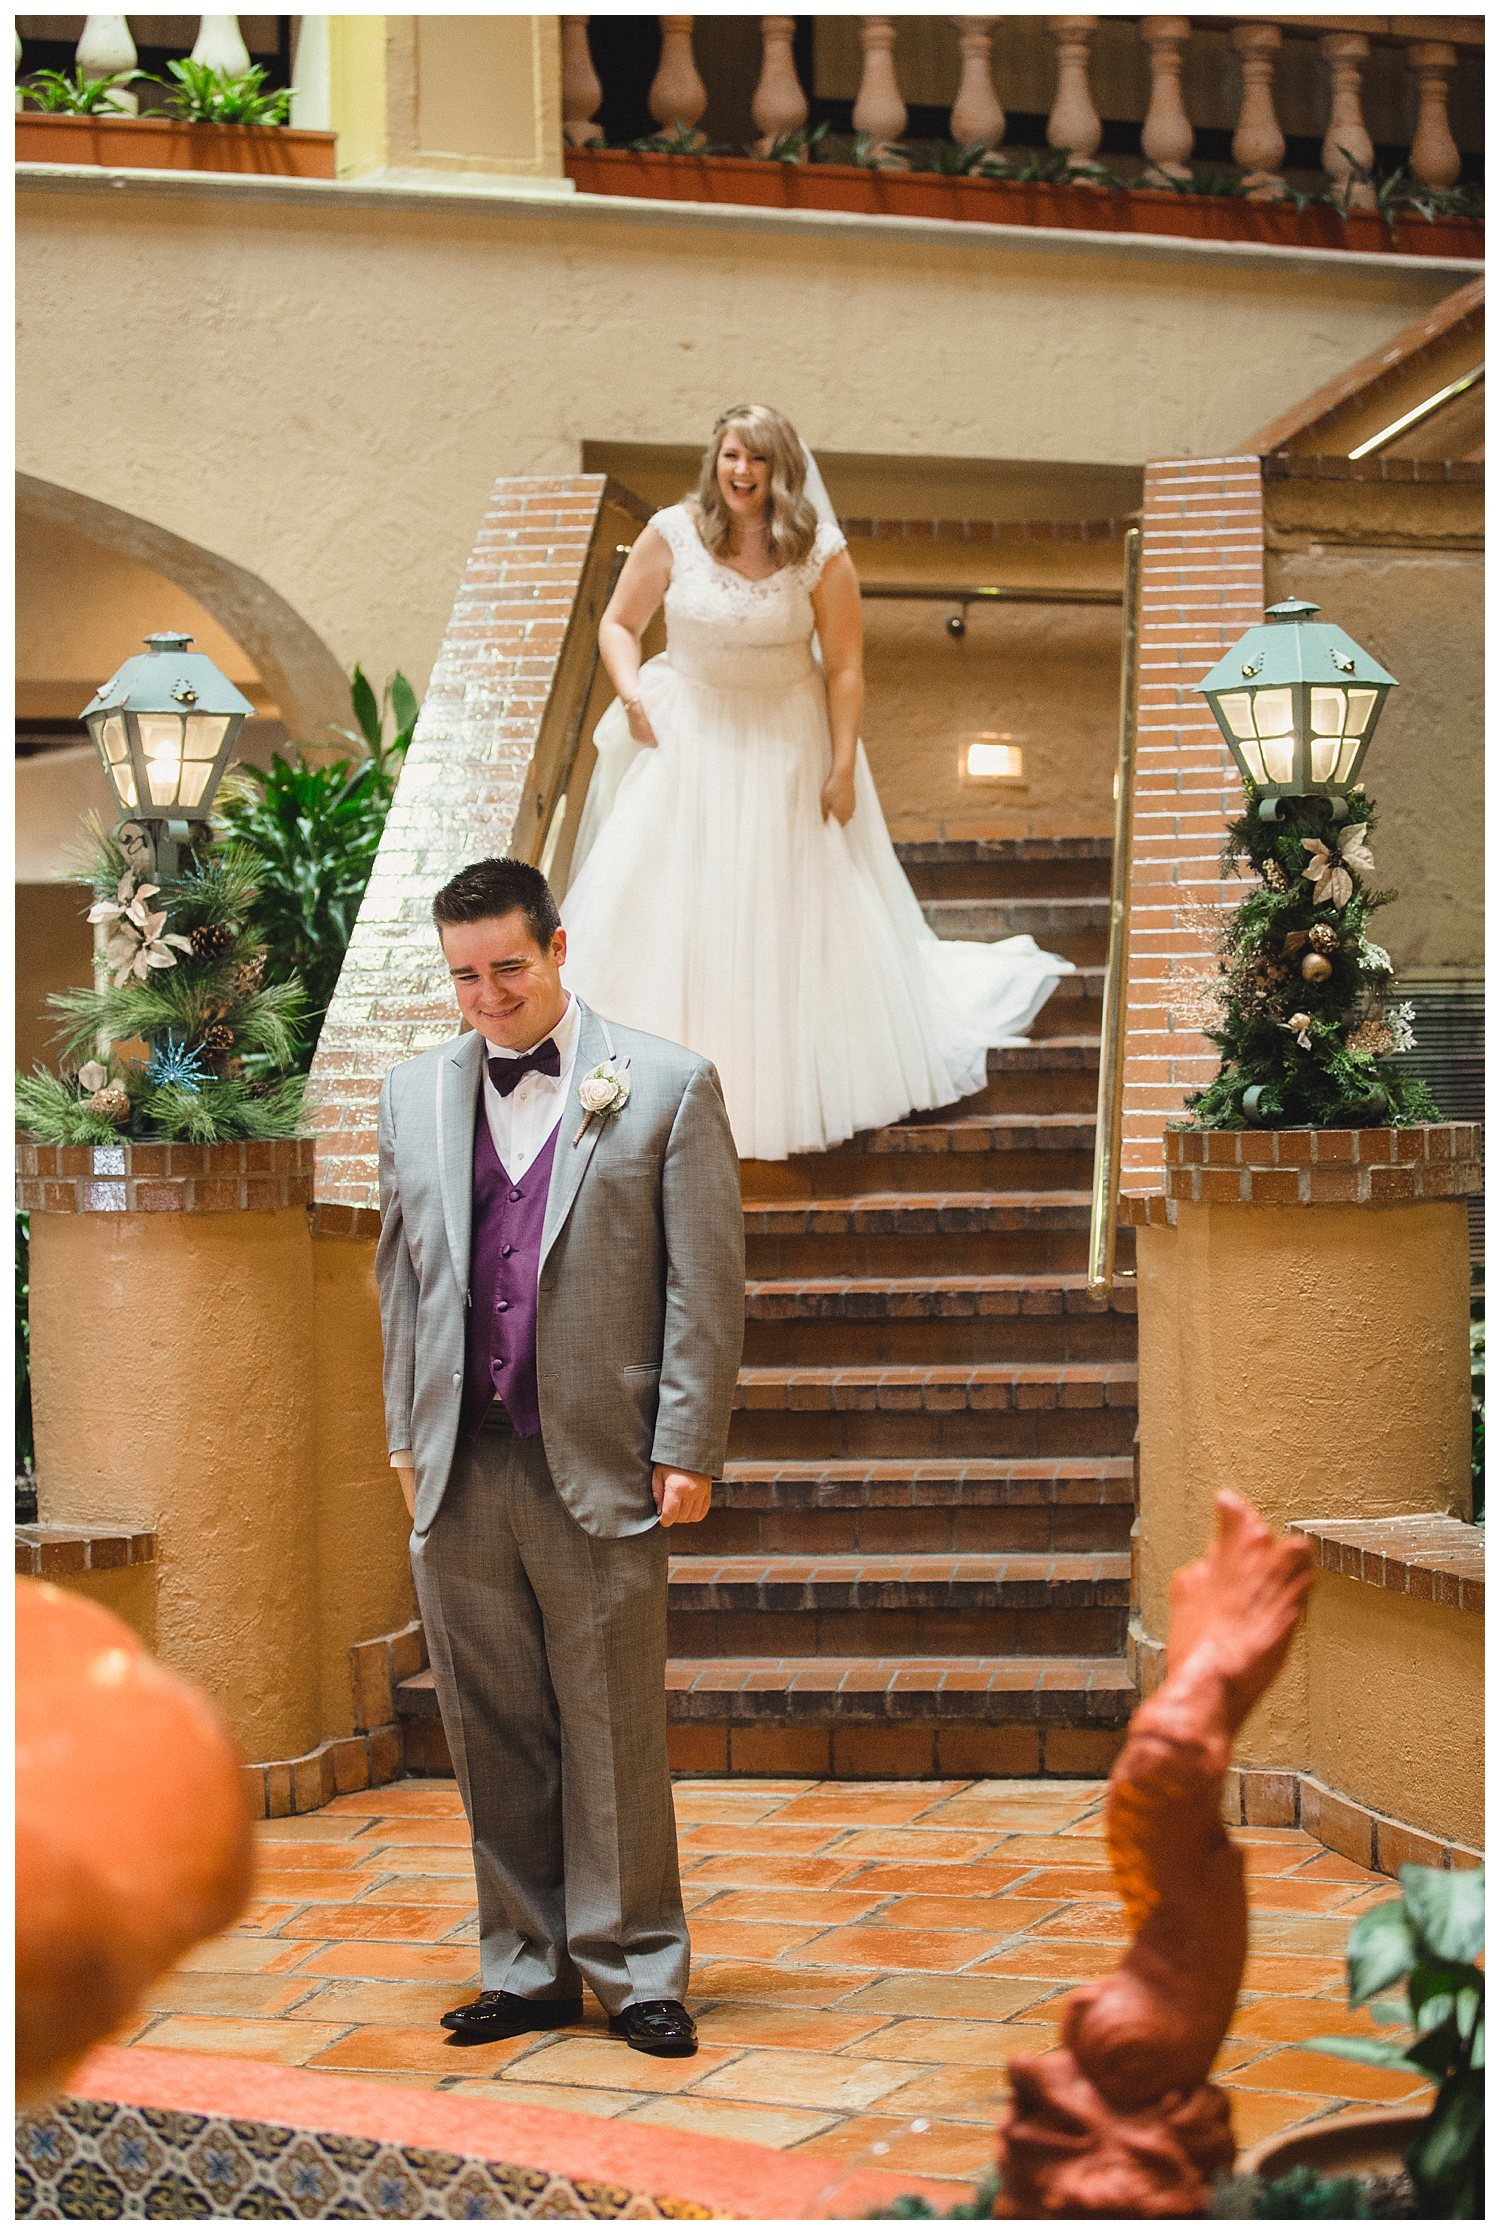 Kelsey_Diane_Photography_Loose_Mansion_Wedding_Photography_Kansas_City_Victor_Lyndsay_0322.jpg